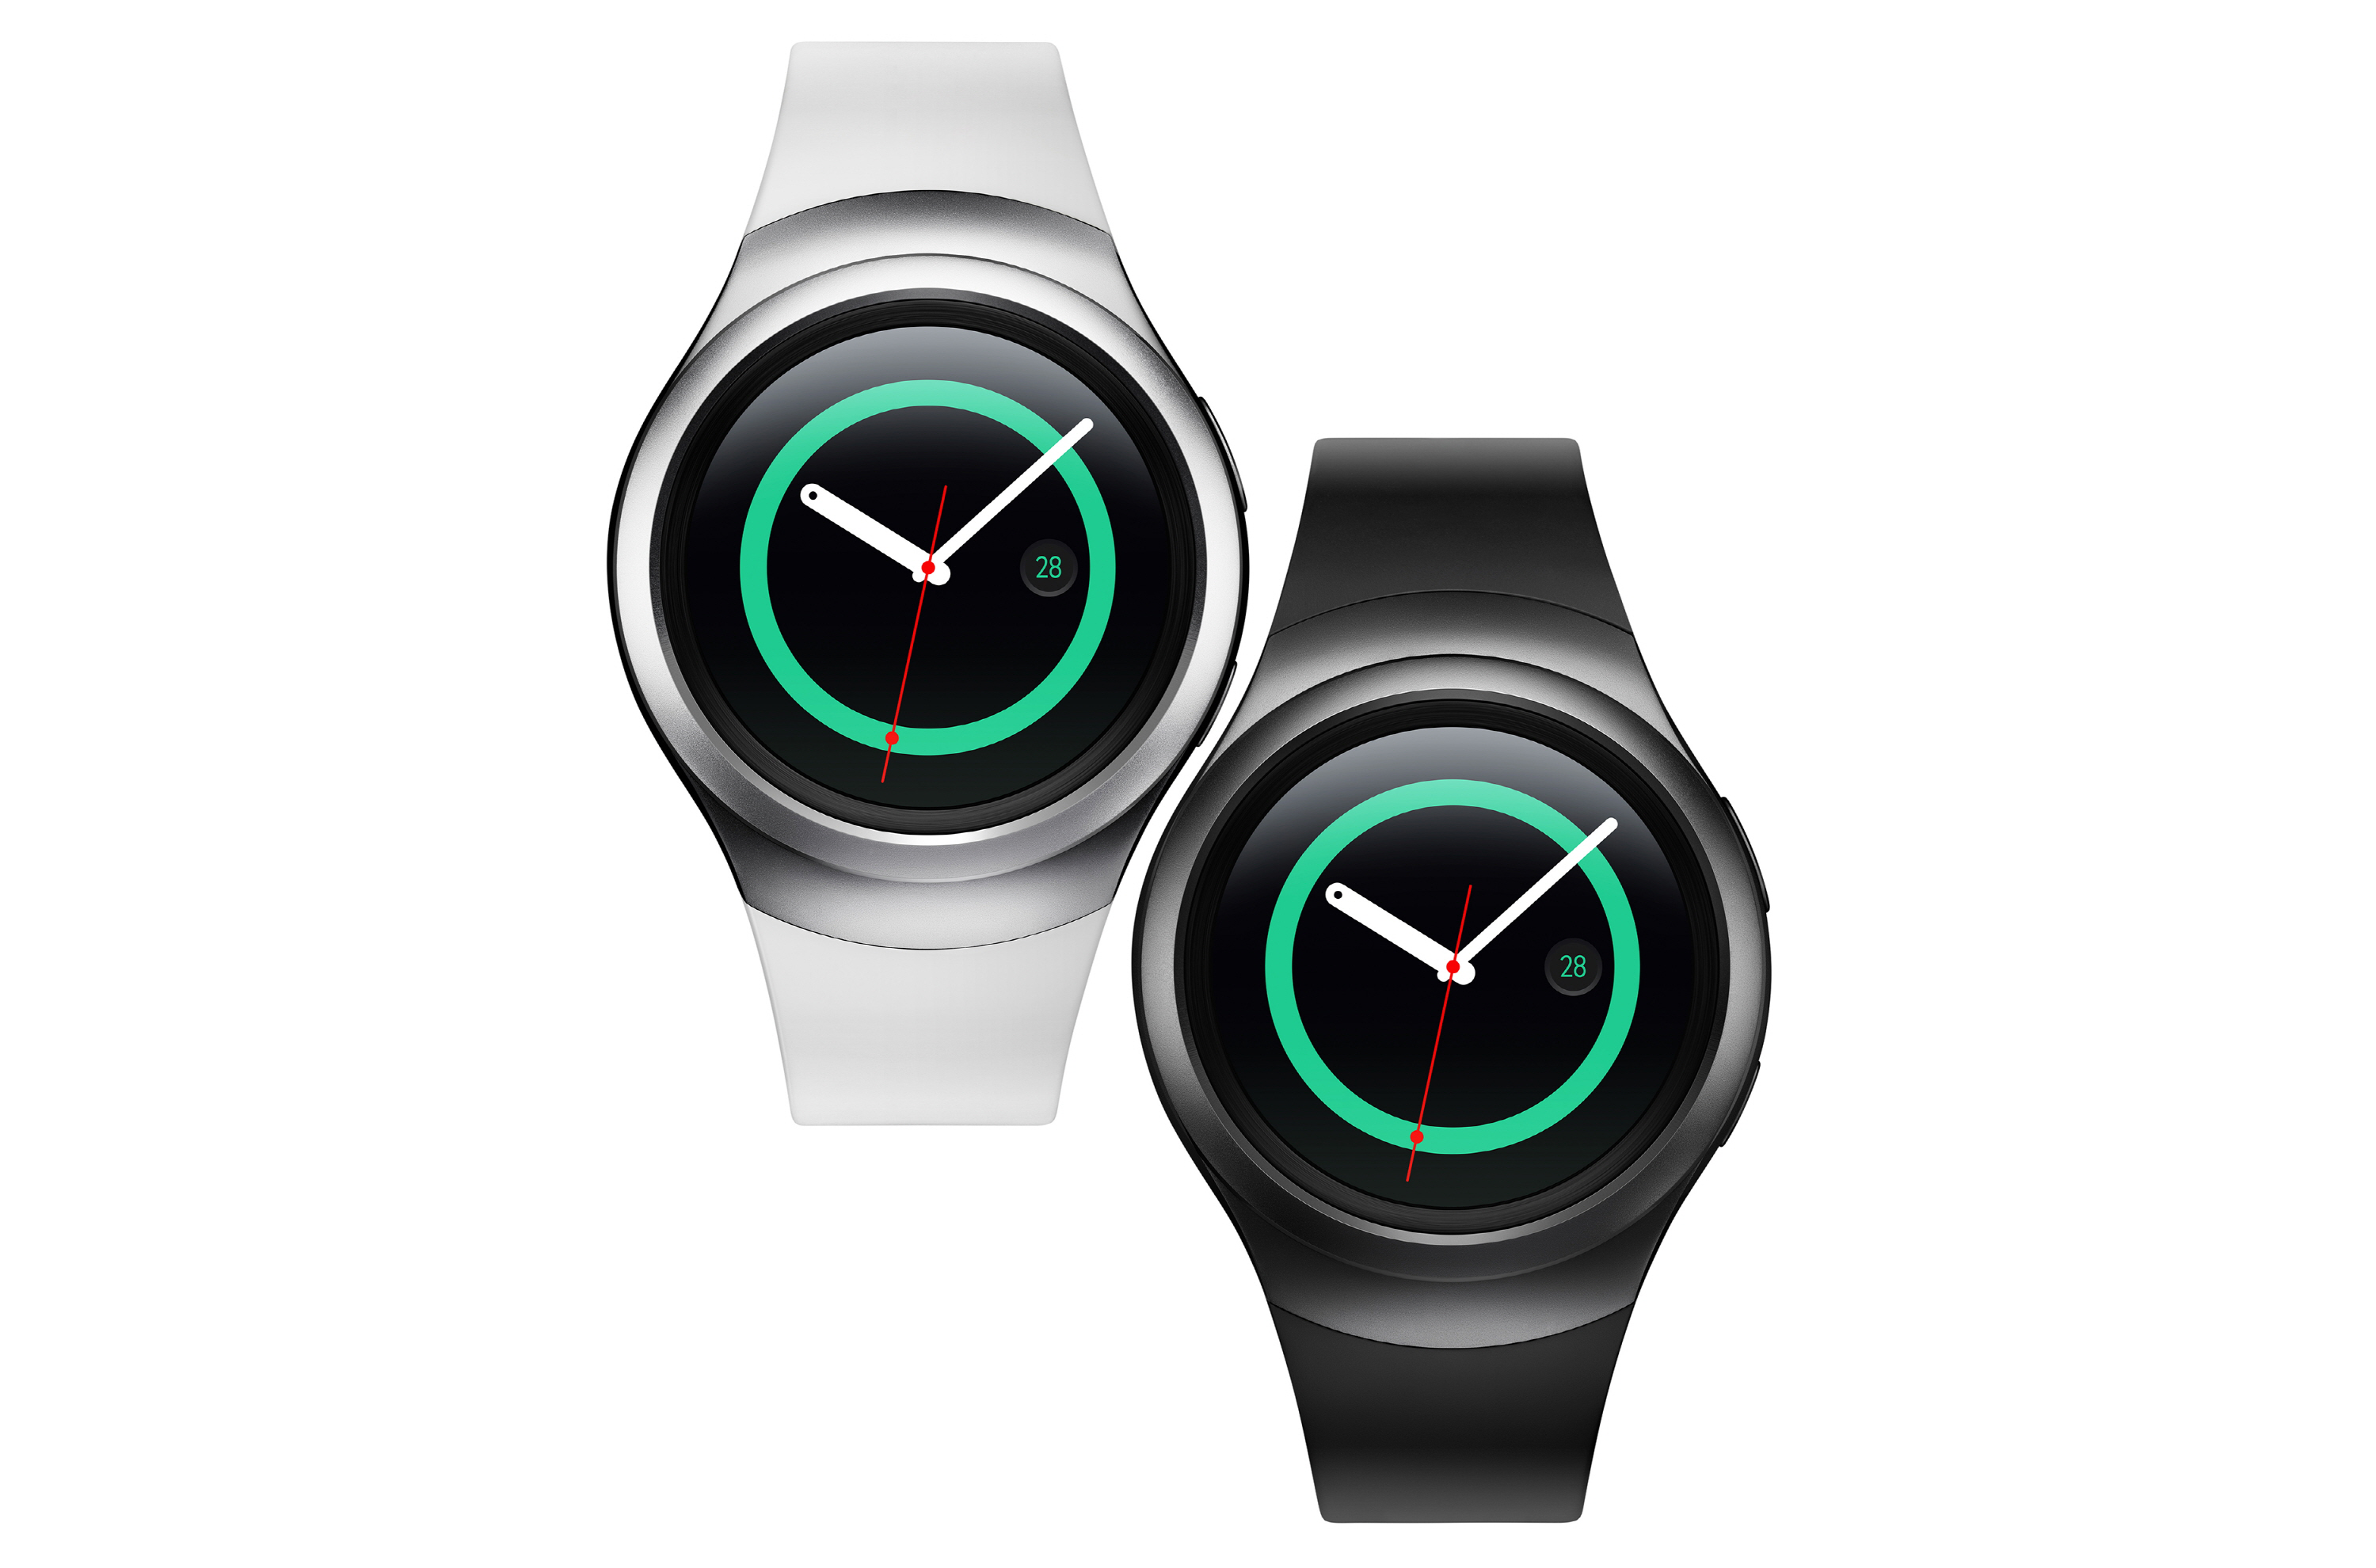 Samsung Announces The Gear S2 Smartwatch